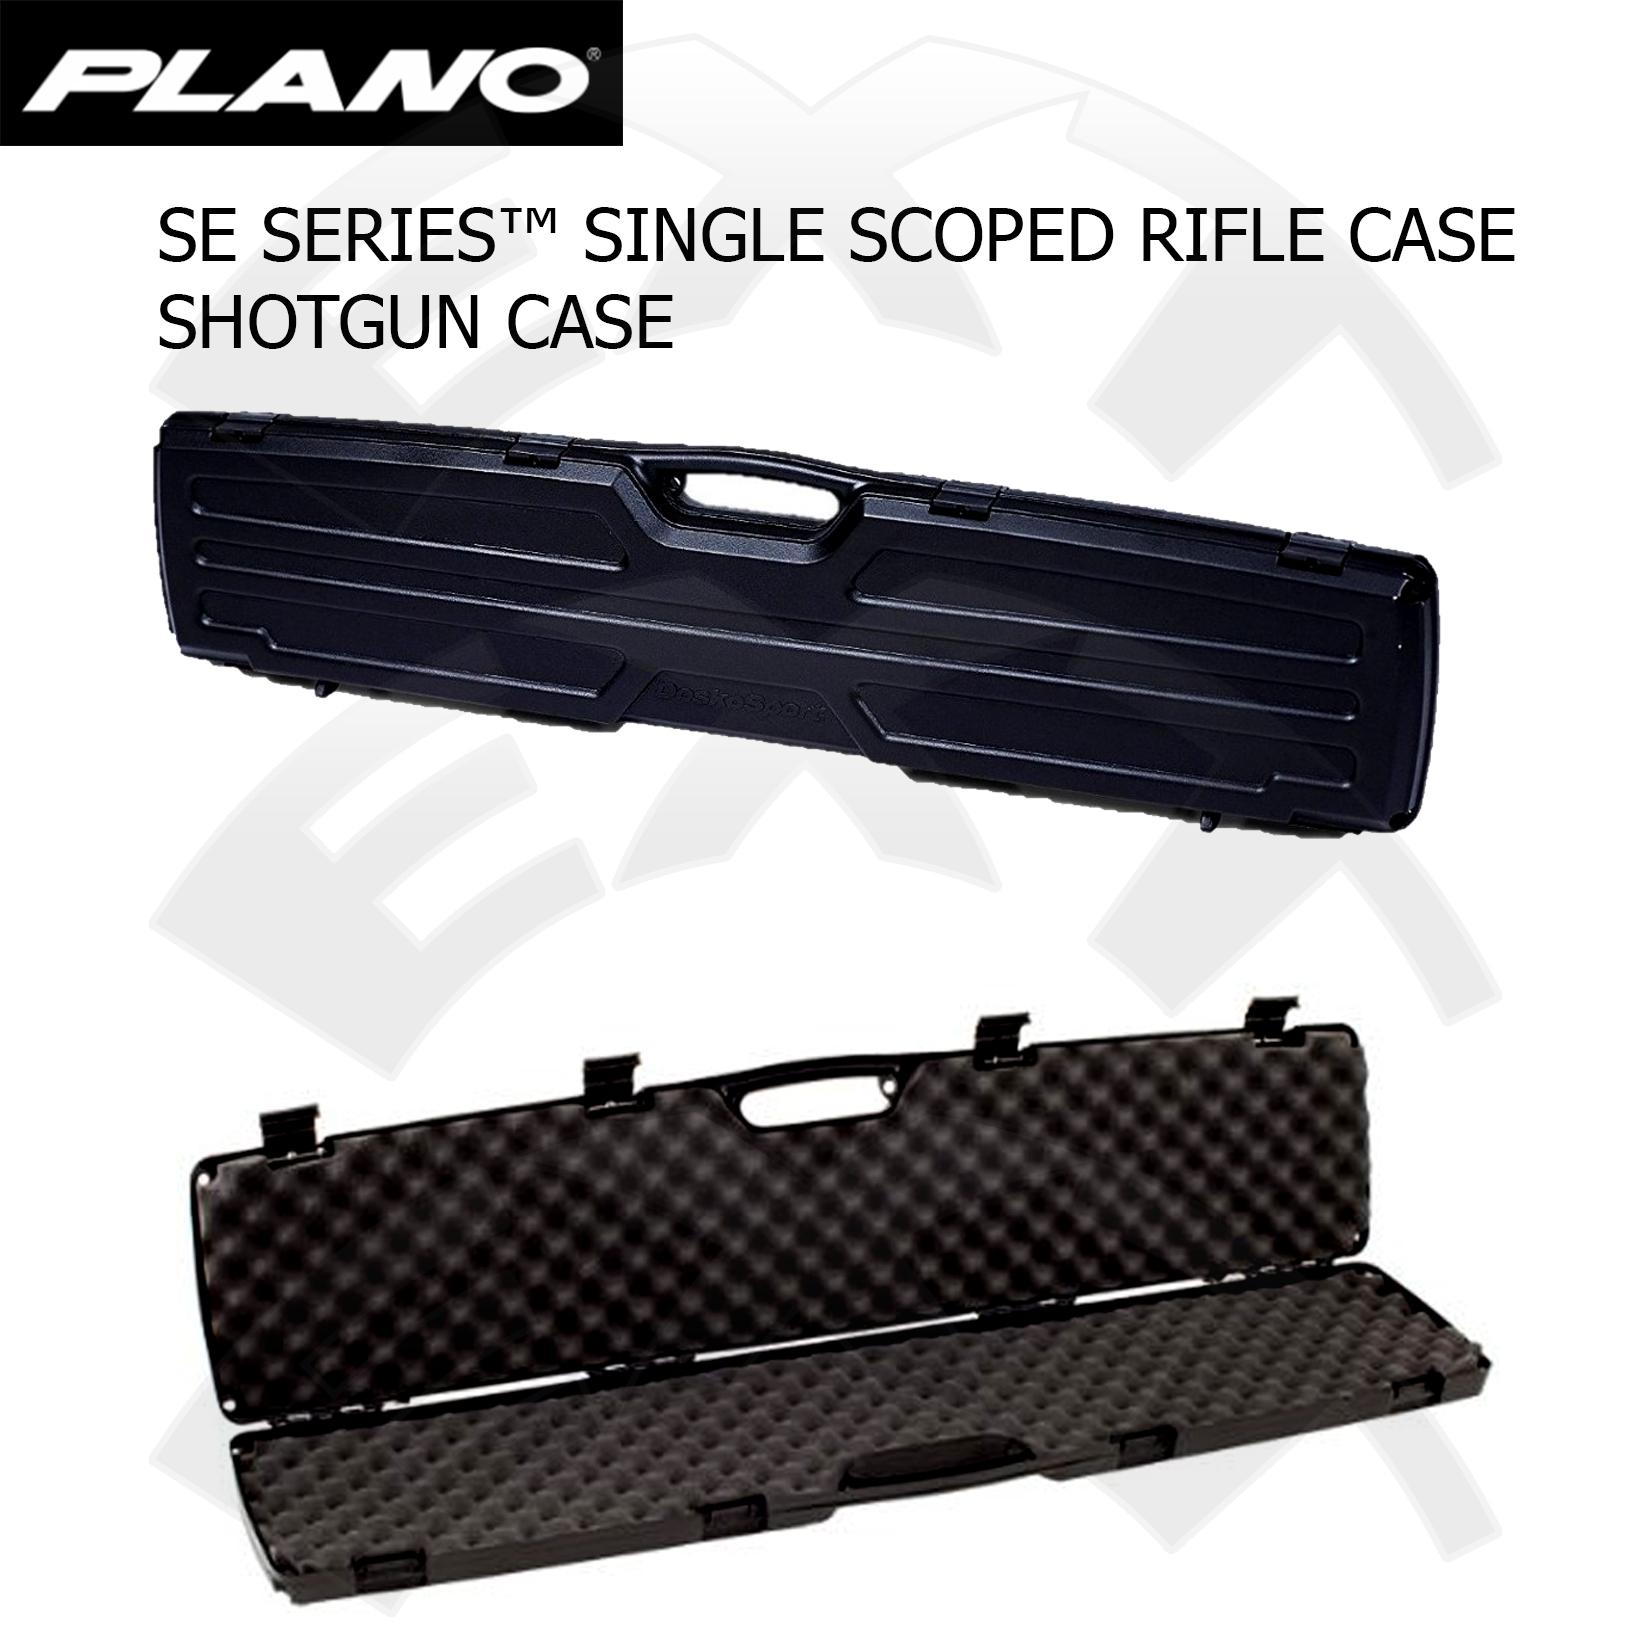 Plano Case Rifle Case Tactical Case Protection Hard Case Foam Padded  Shotgun Case